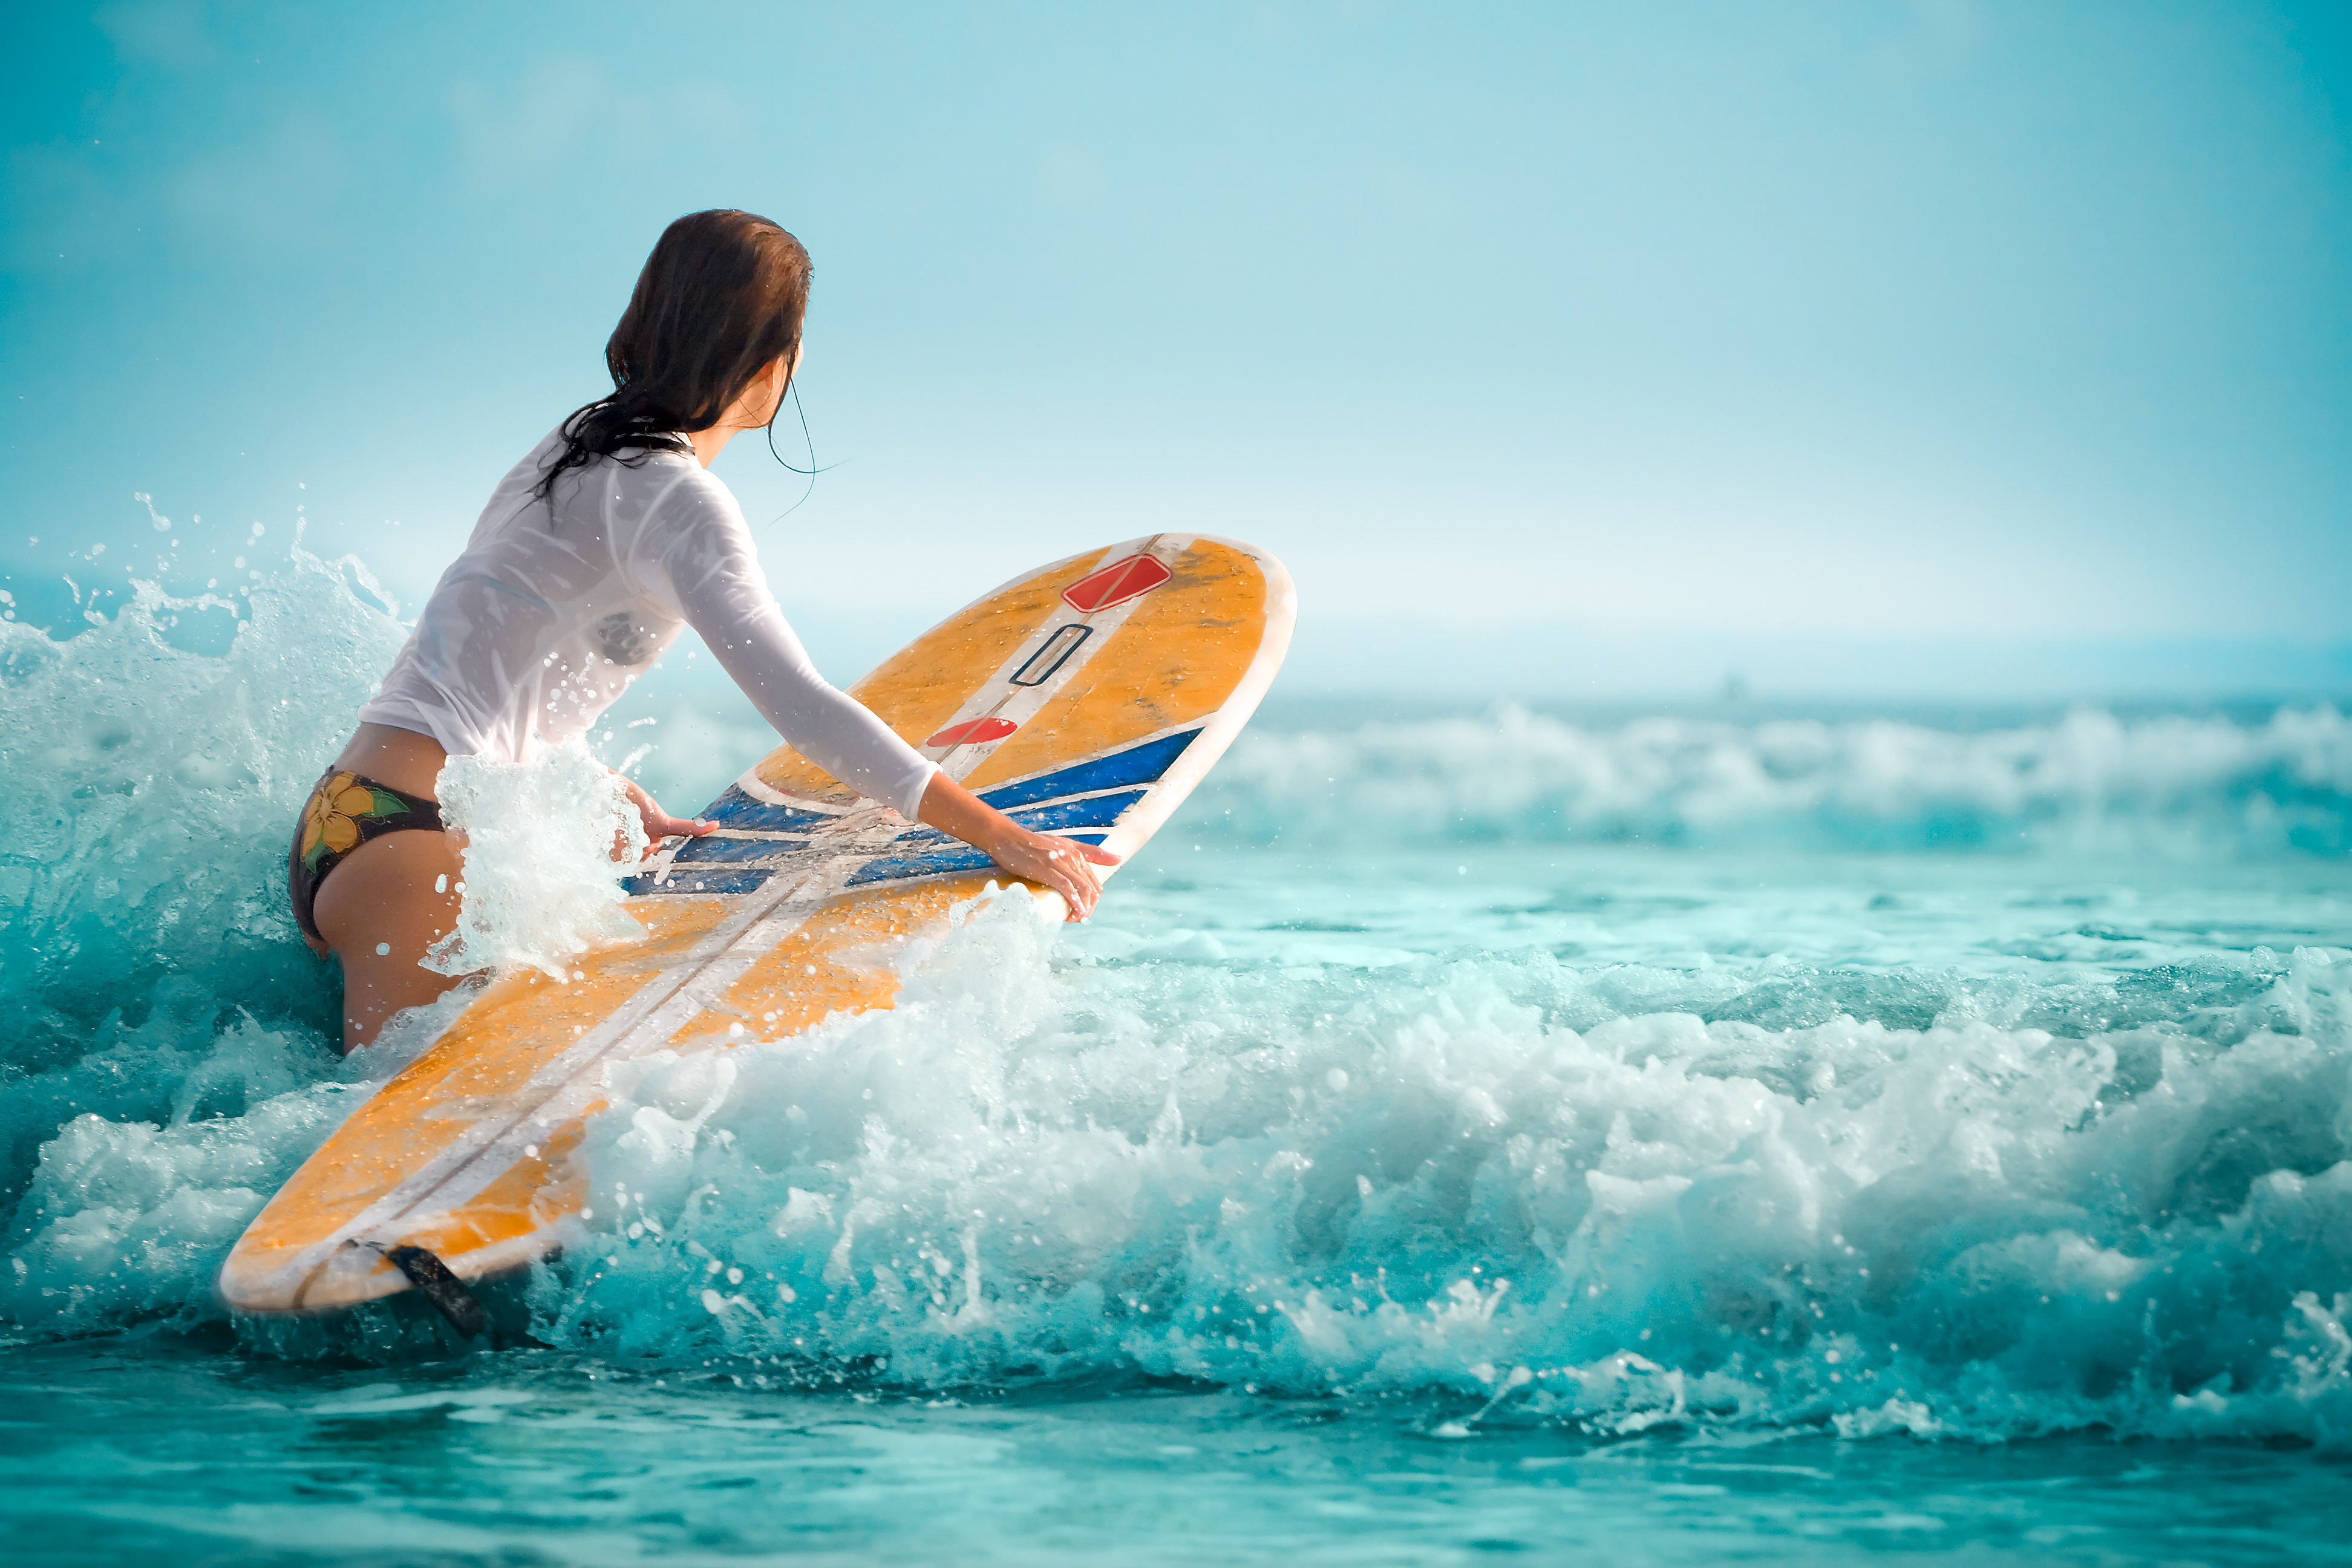 Learn to Surf at These Hotels